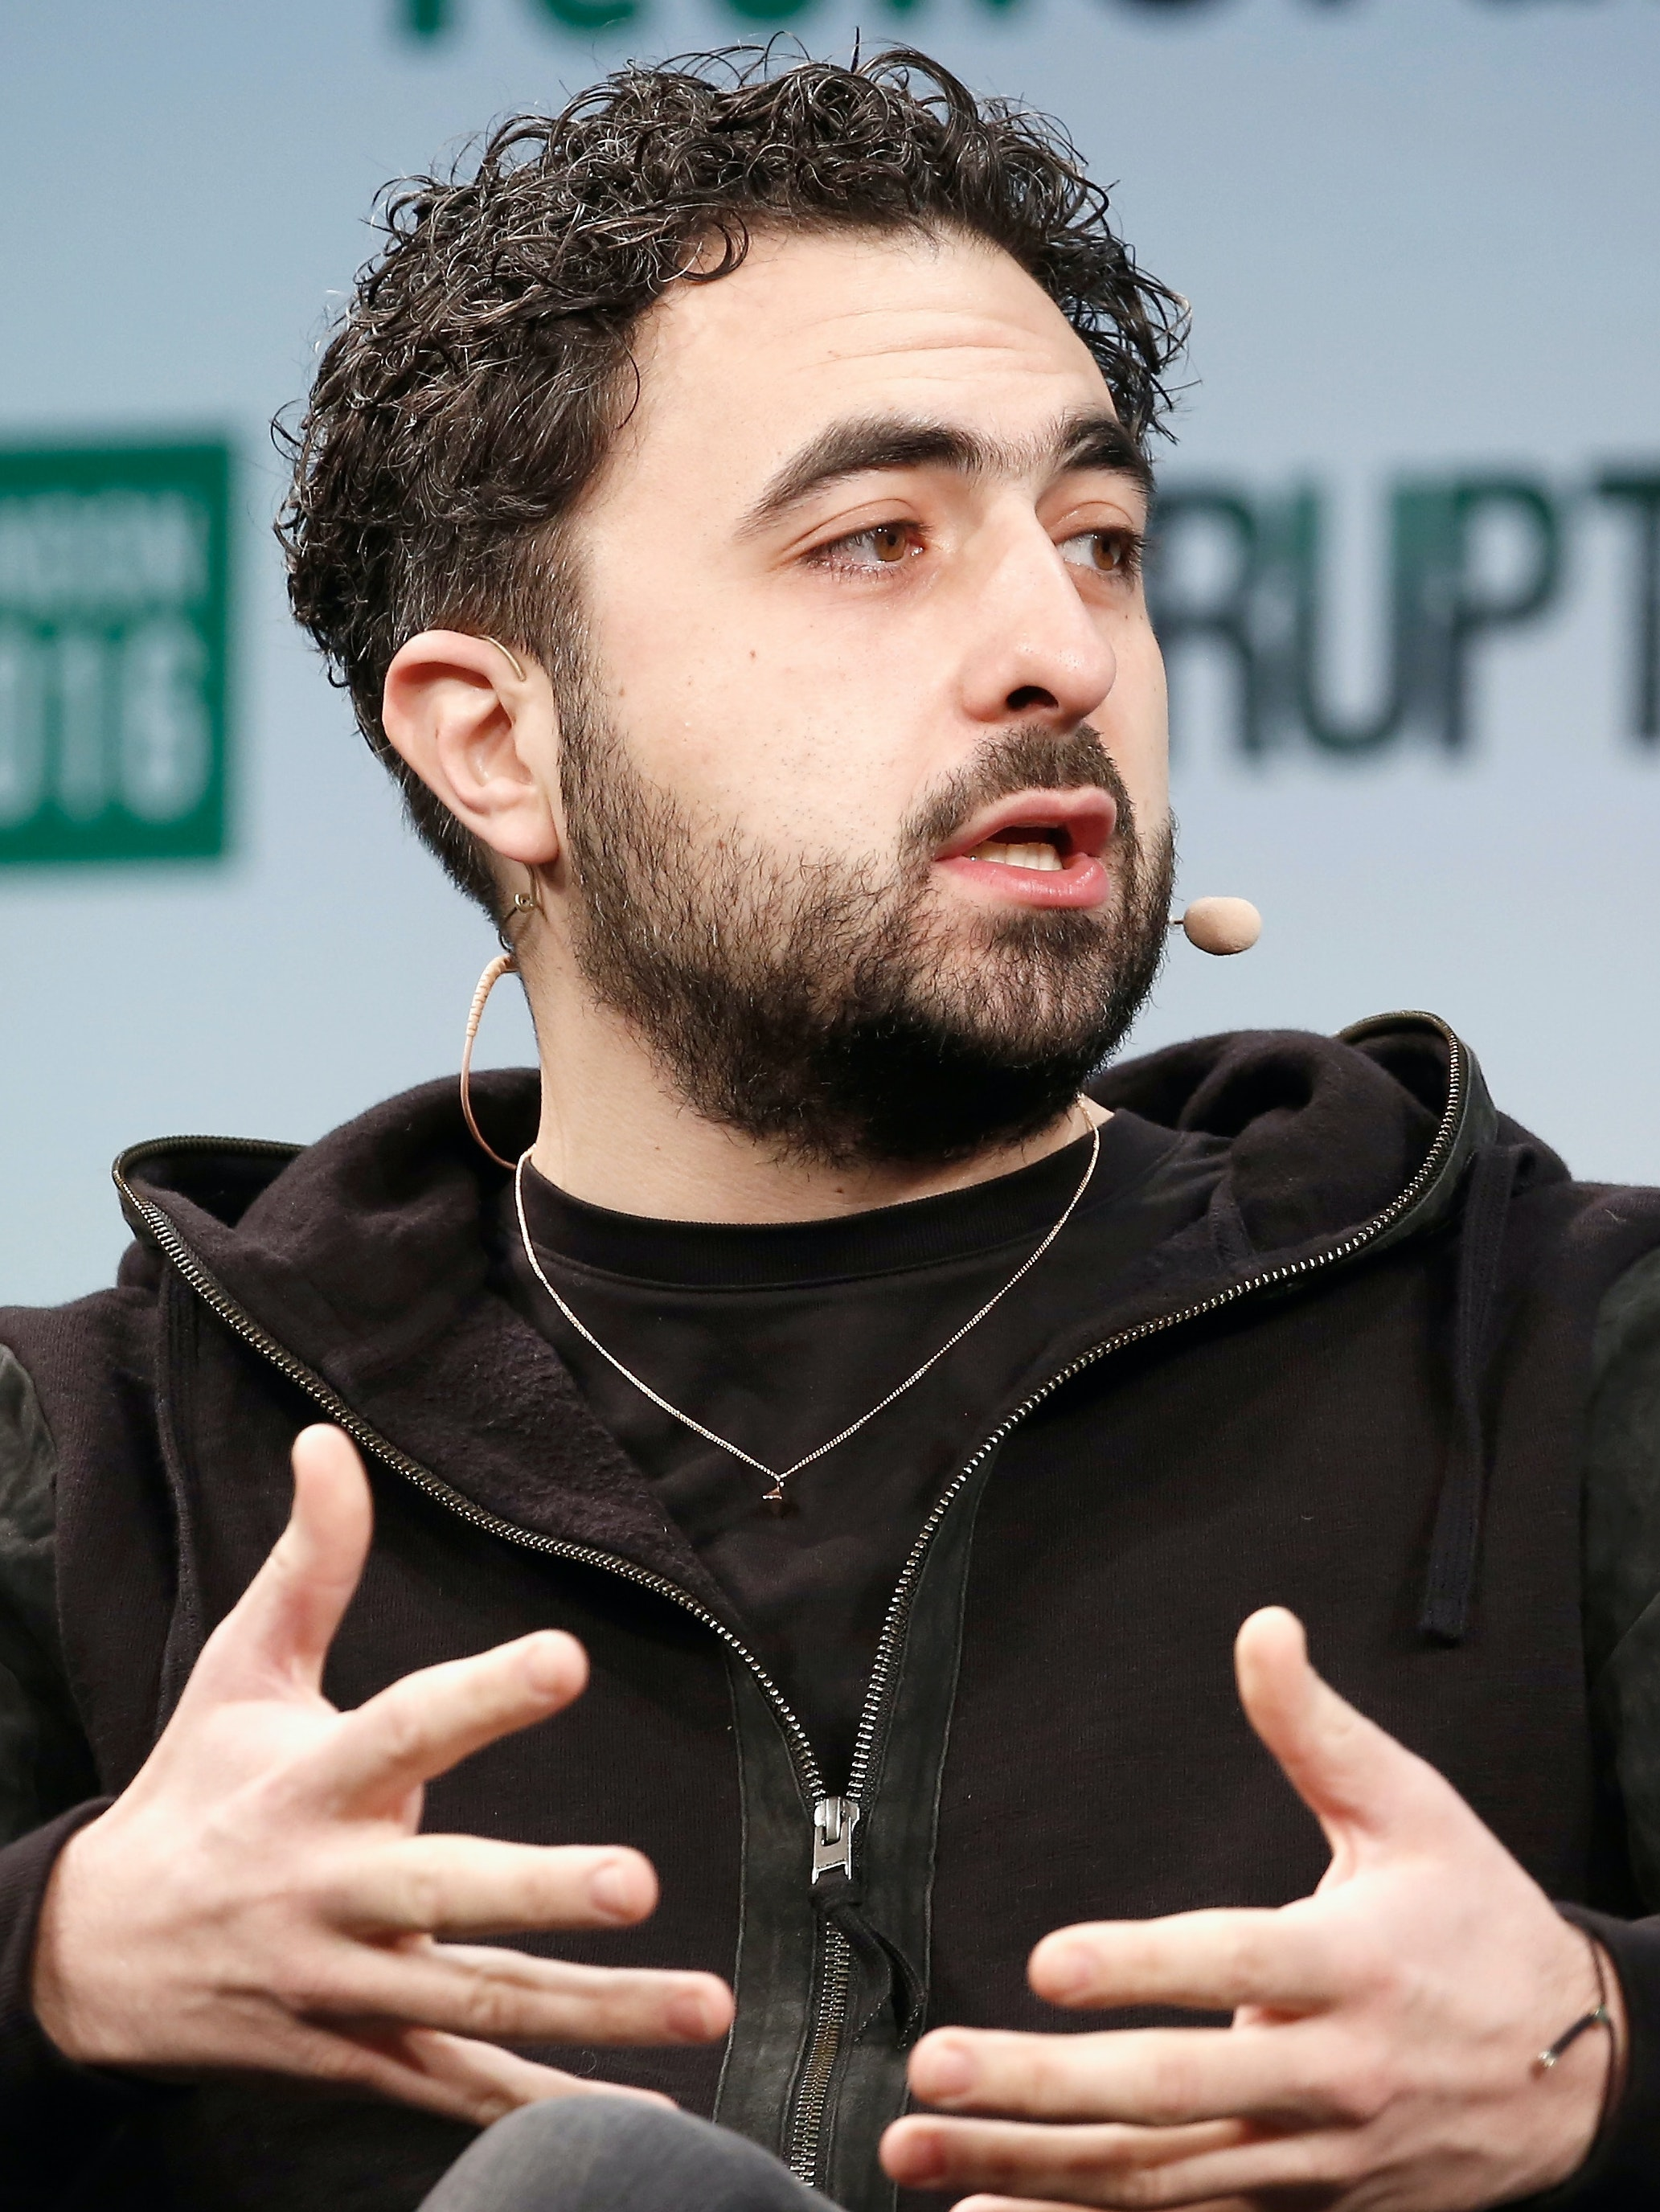 Co-founder of Google DeepMind Mustafa Suleyman attends a Q&A during day 1 of TechCrunch Disrupt London at the Copper Box on December 5, 2016 in London, England.